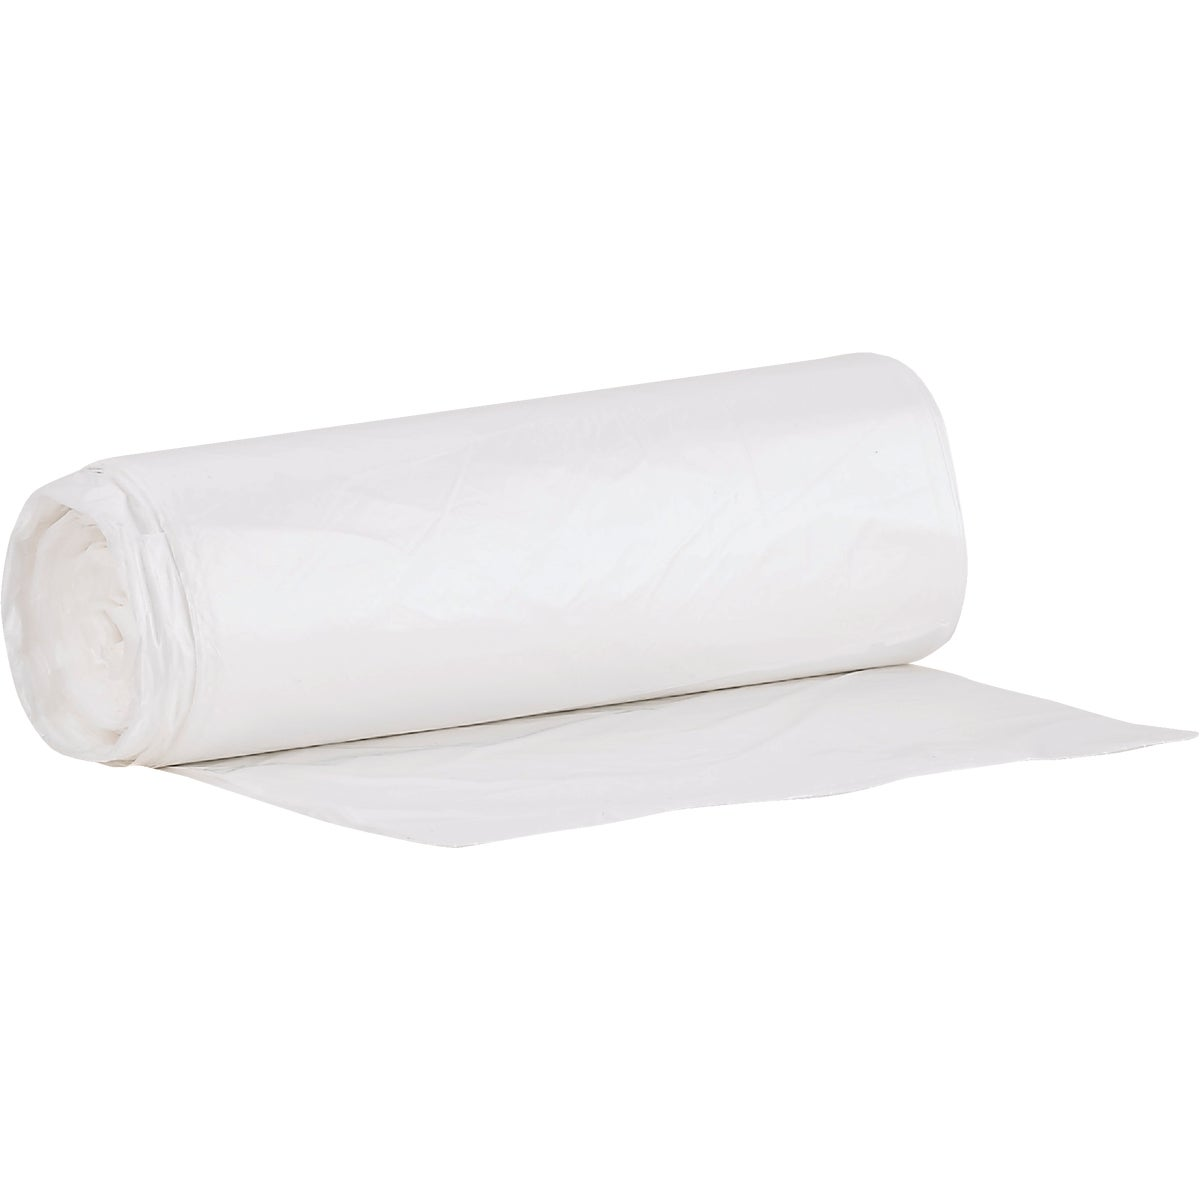 200CT 43X46 CAN LINER